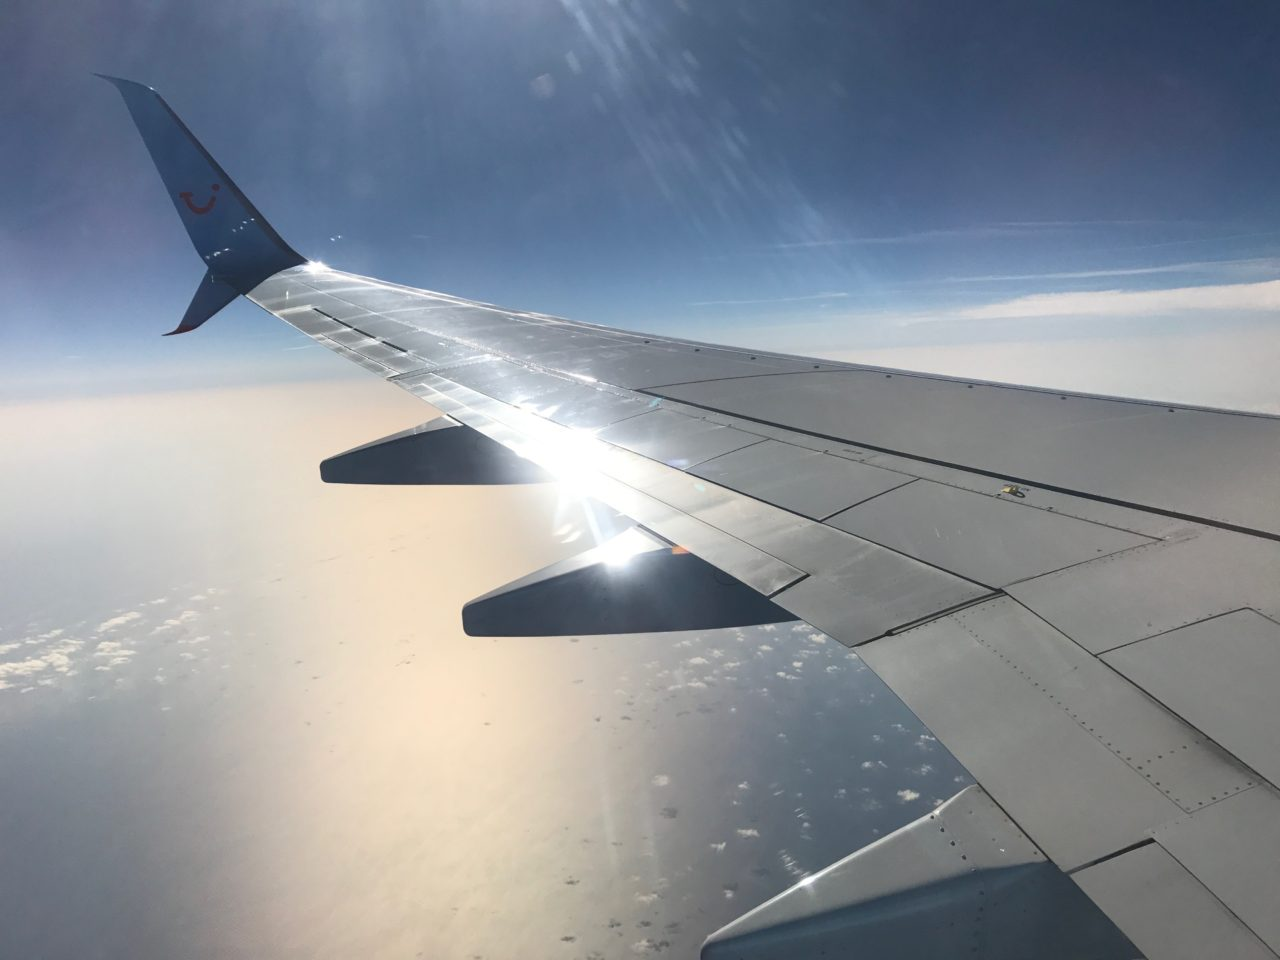 Plane Window View Of Wing Over Sea With Clouds